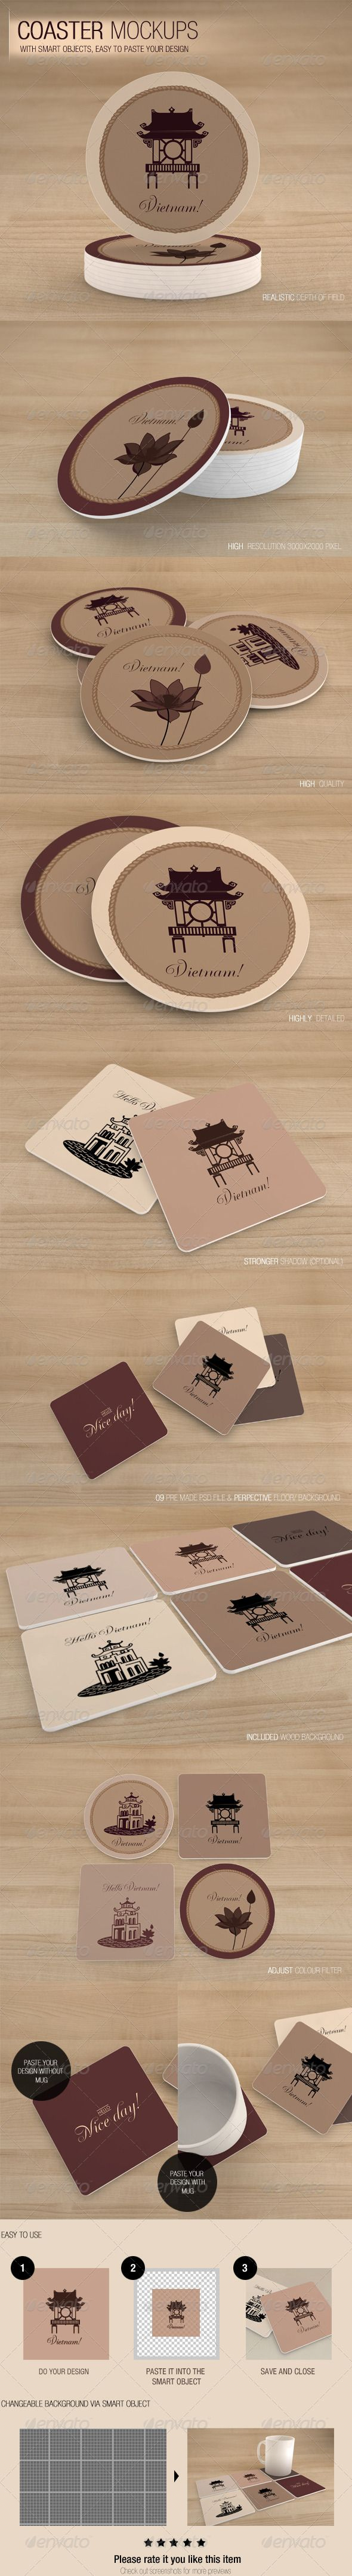 coaster mockups mockup font logo and flyer template